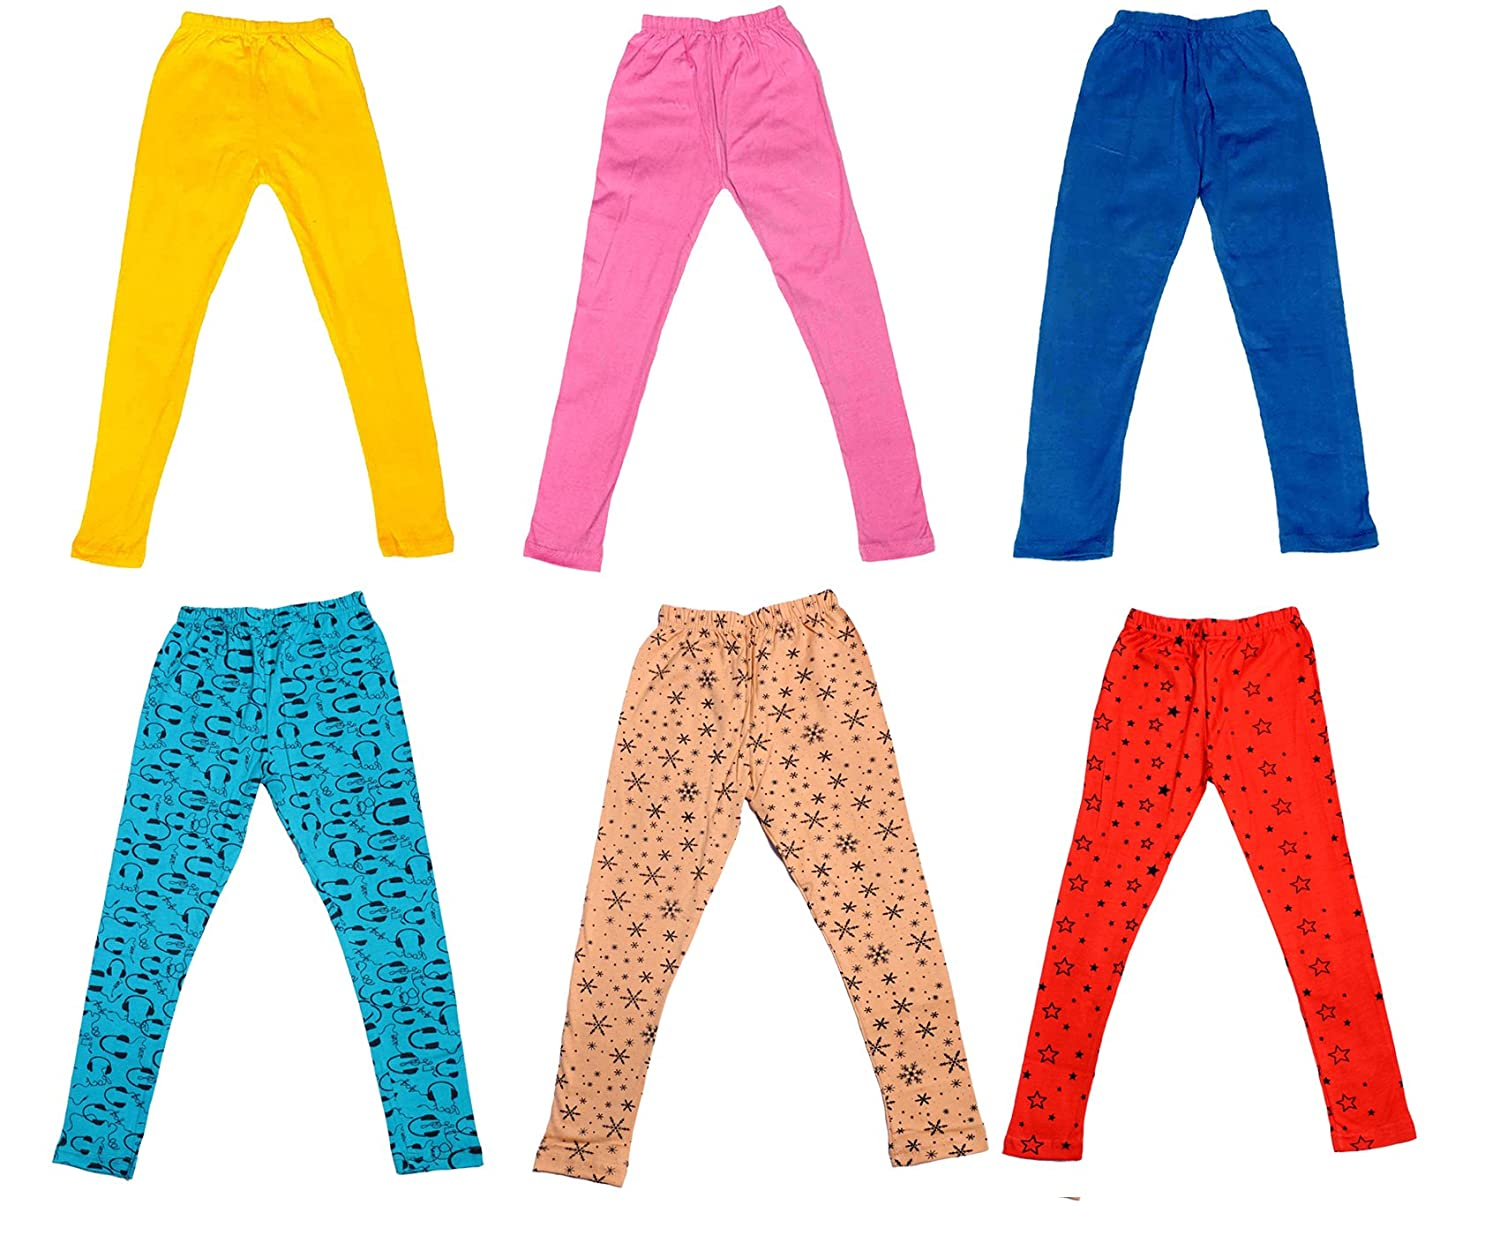 /_Multicolor/_Size-4-5 Years/_714070809161719-IW-P6-26 and 3 Cotton Printed Legging Pants Indistar Girls 3 Cotton Solid Legging Pants Pack Of 6